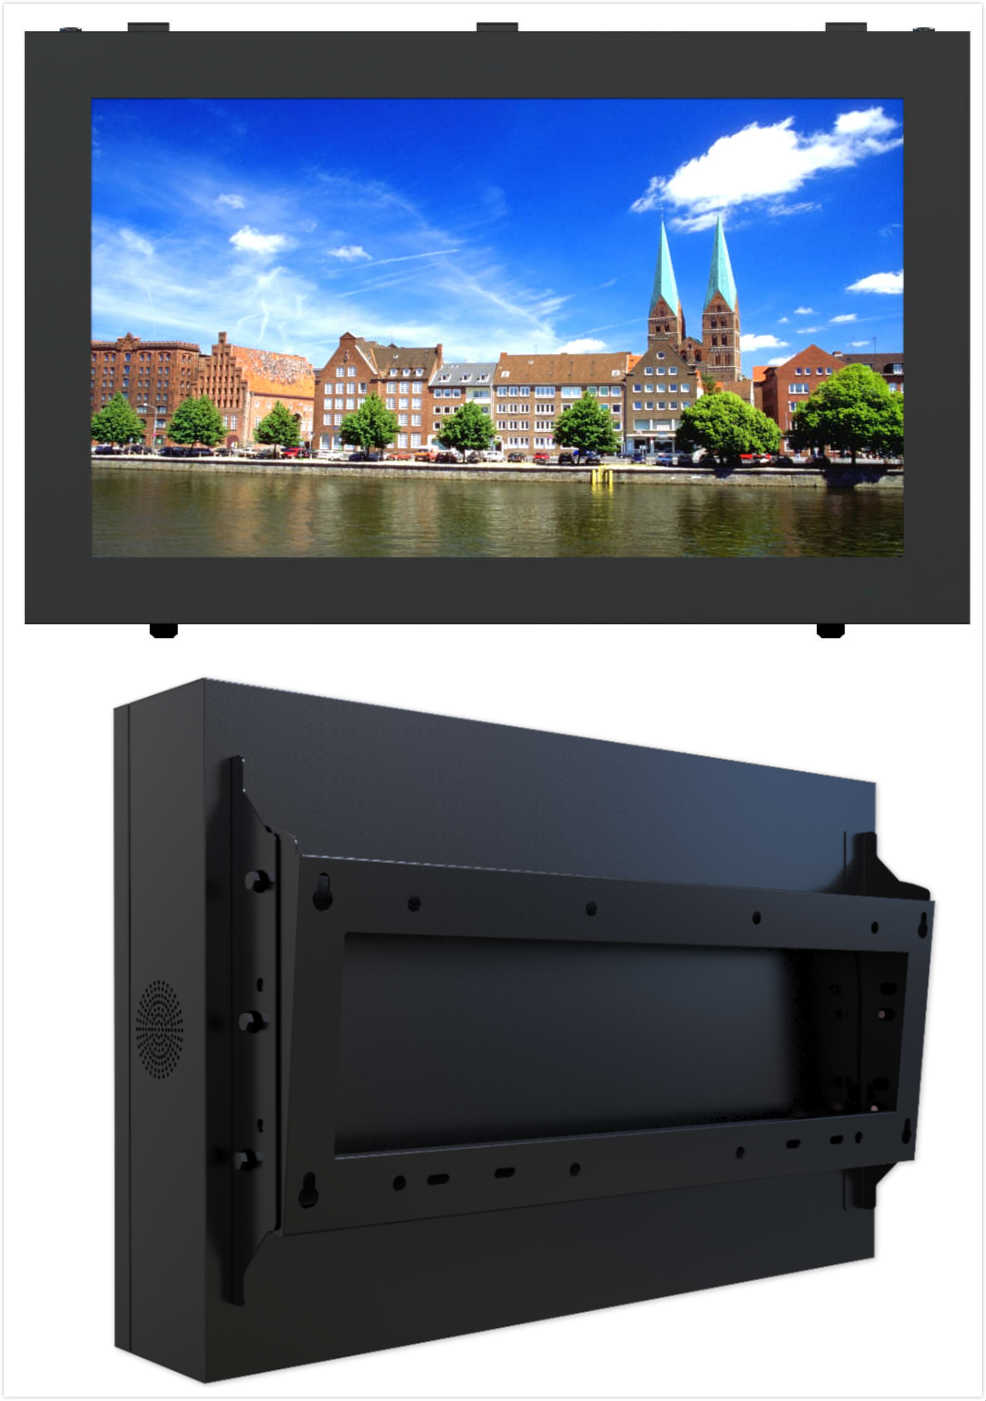 "outdoor Wall Mounted LCD Video Wall Screens, 32"" with 4.9mm Bezel, Meeting Room Big Screen"